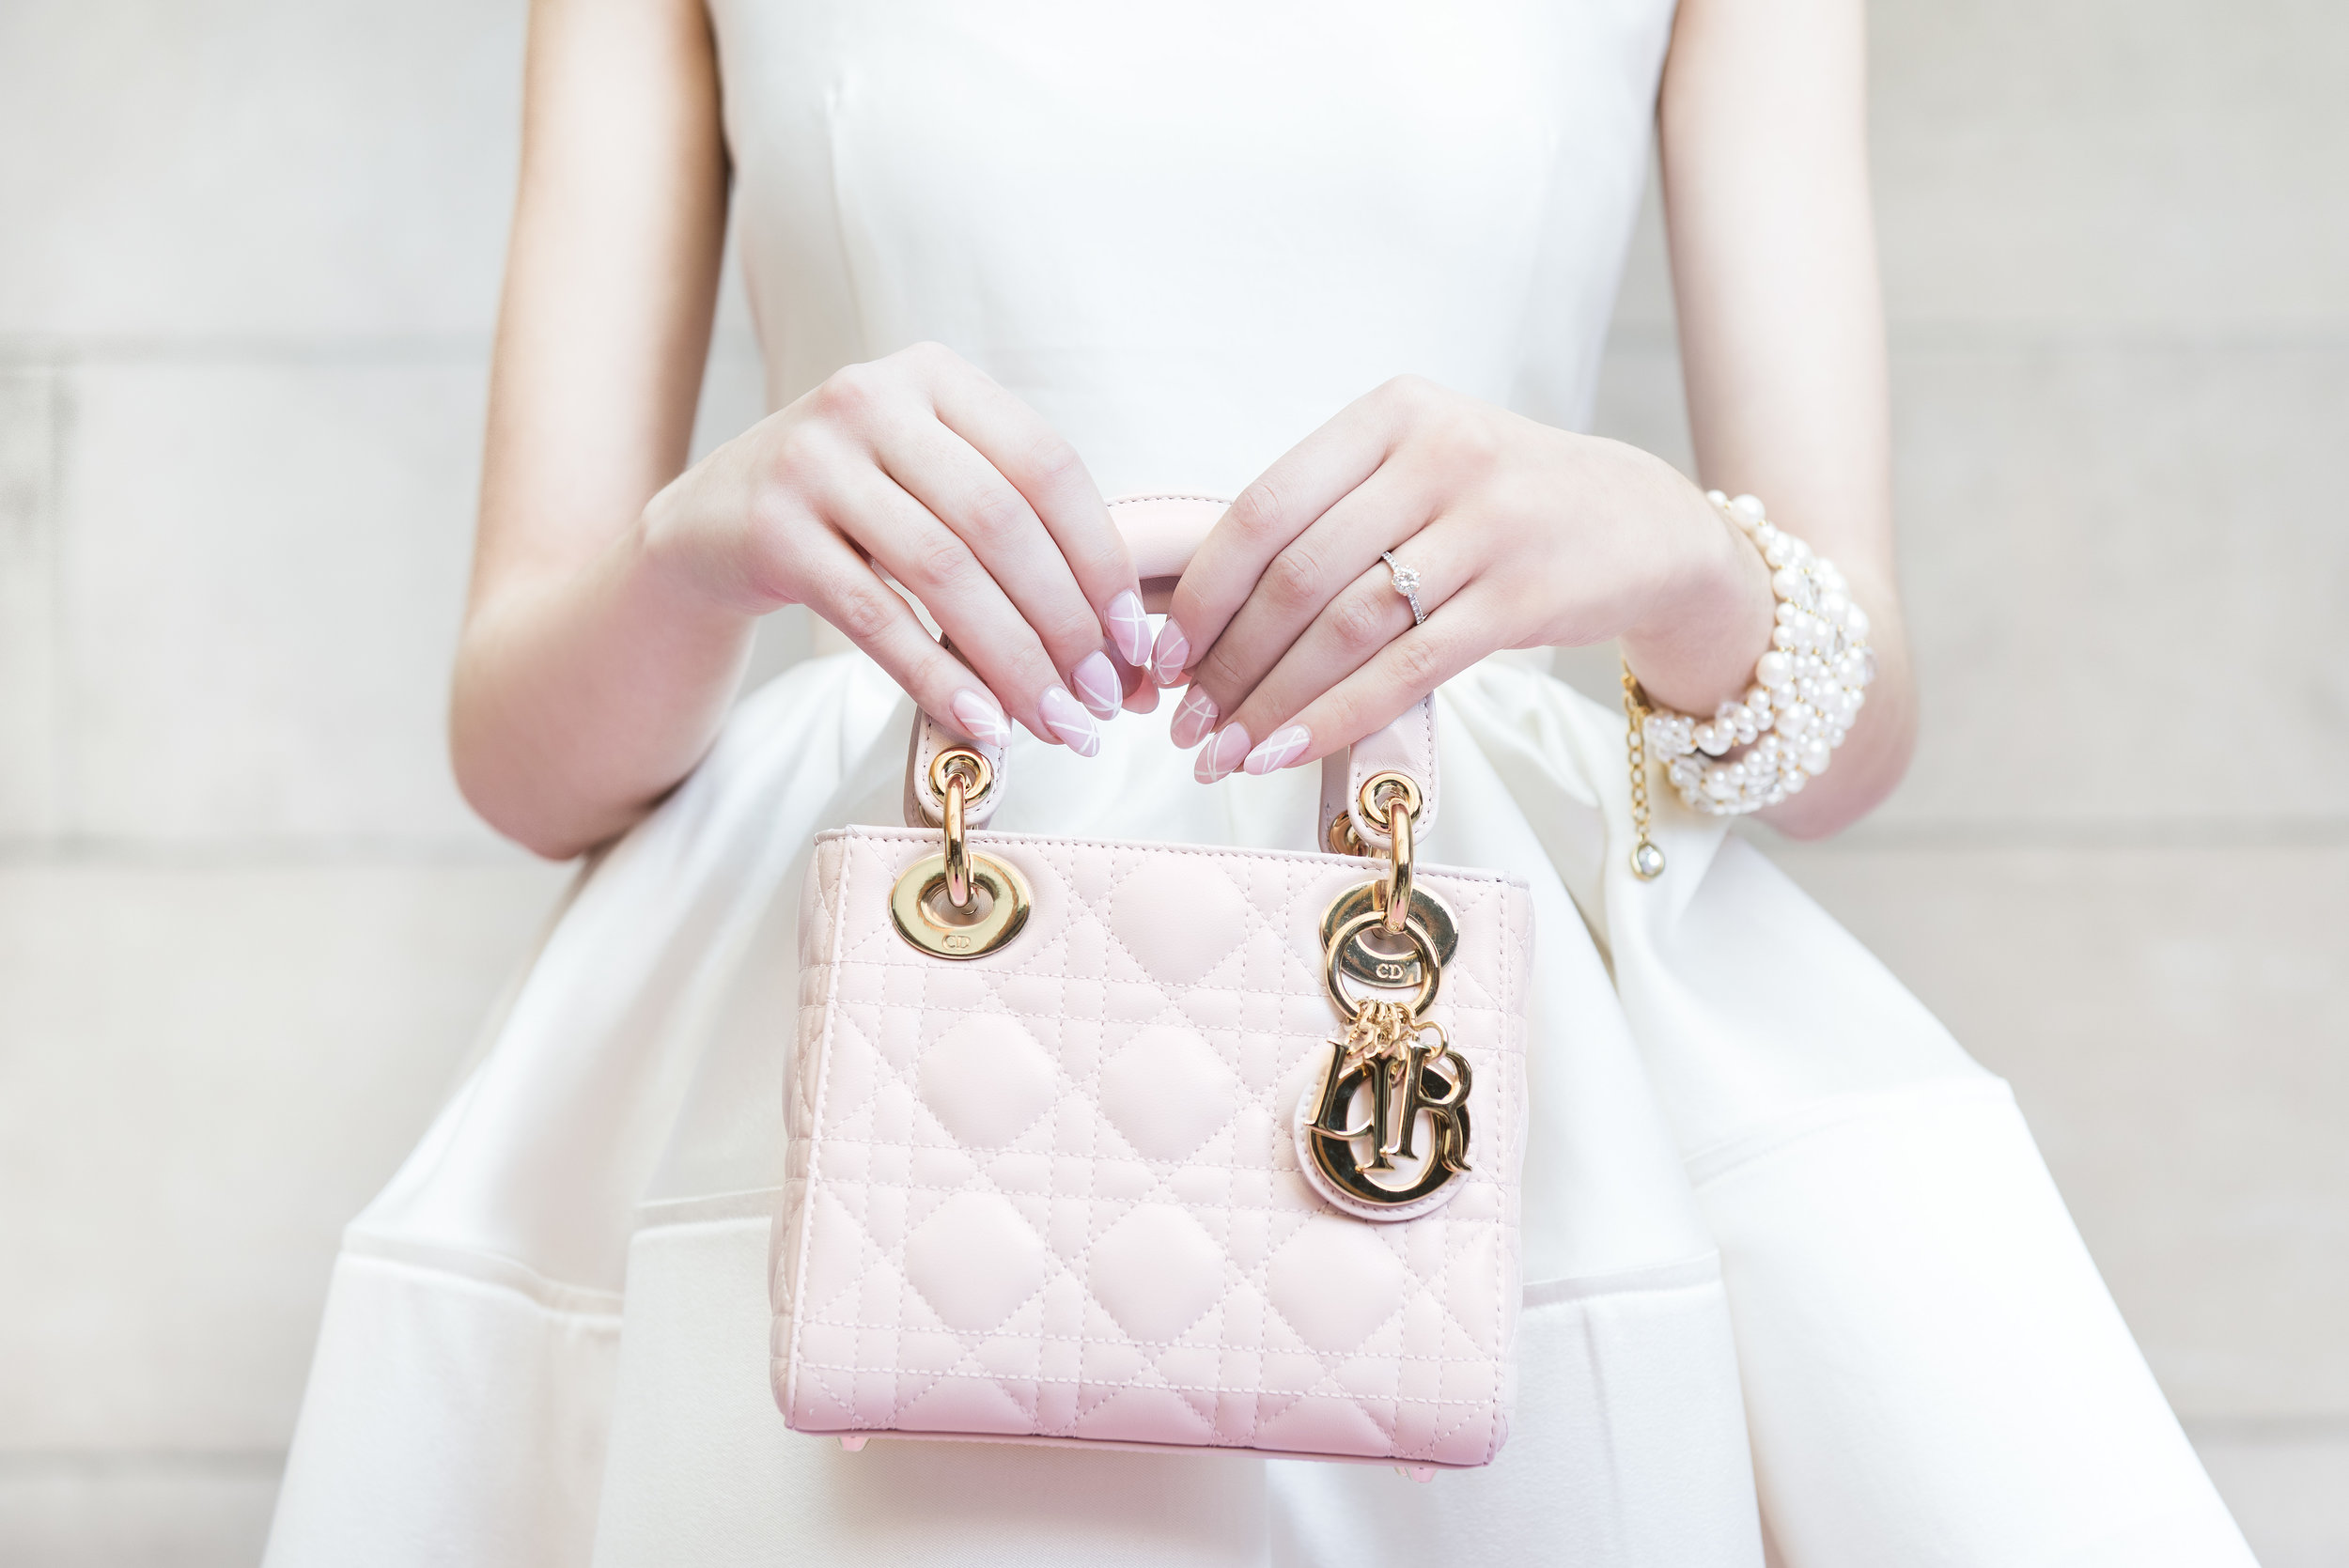 August In Bloom - Dior purse & nail art - Dior Darling (Wedluxe)